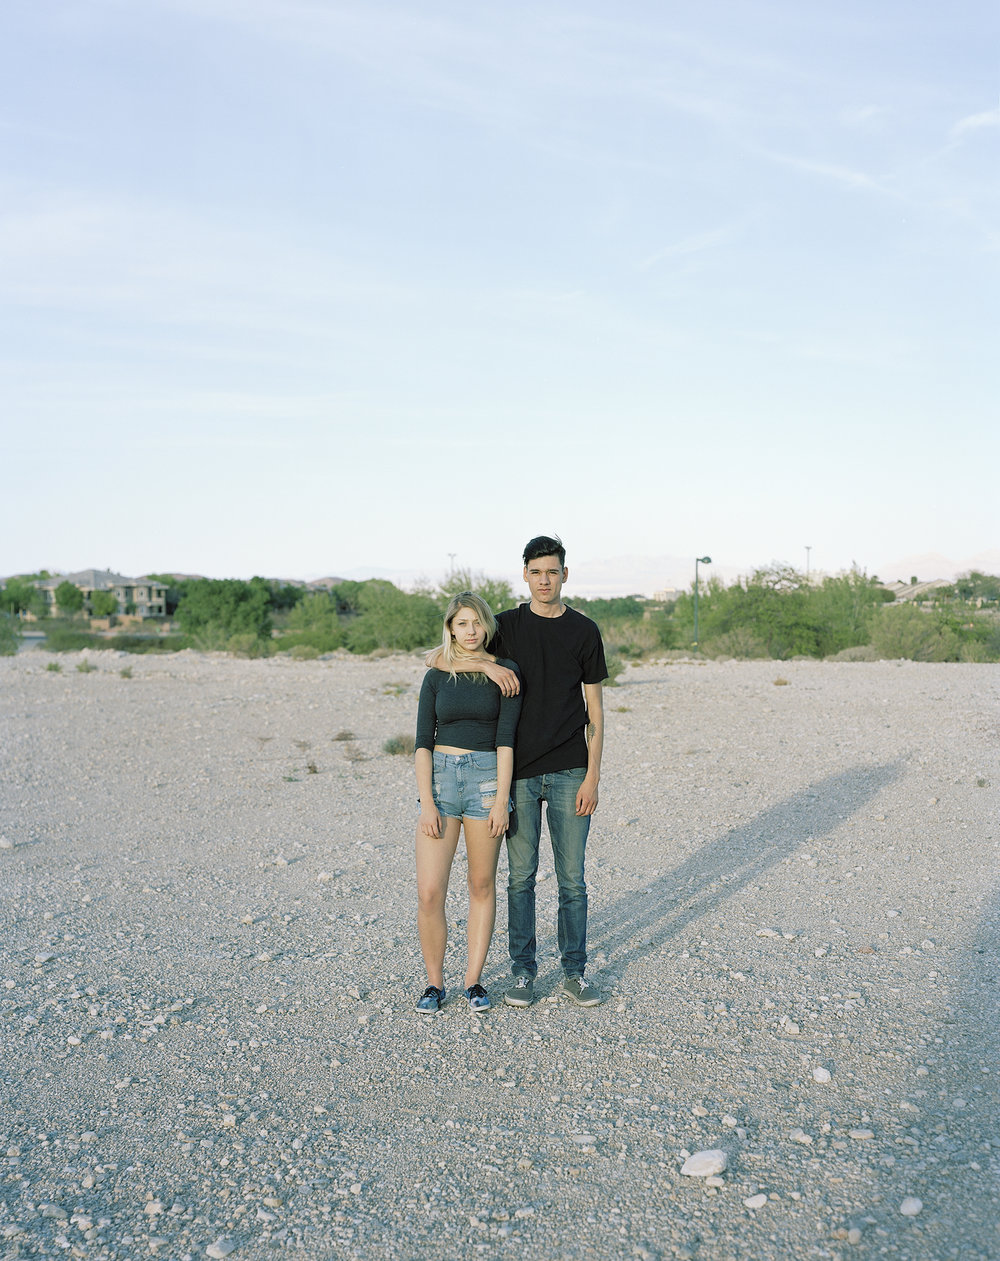 Hayli and Jeremias, 'The Pit,' Desert Park, Summerlin, Las Vegas   from the series   What makes grass grow in the desert